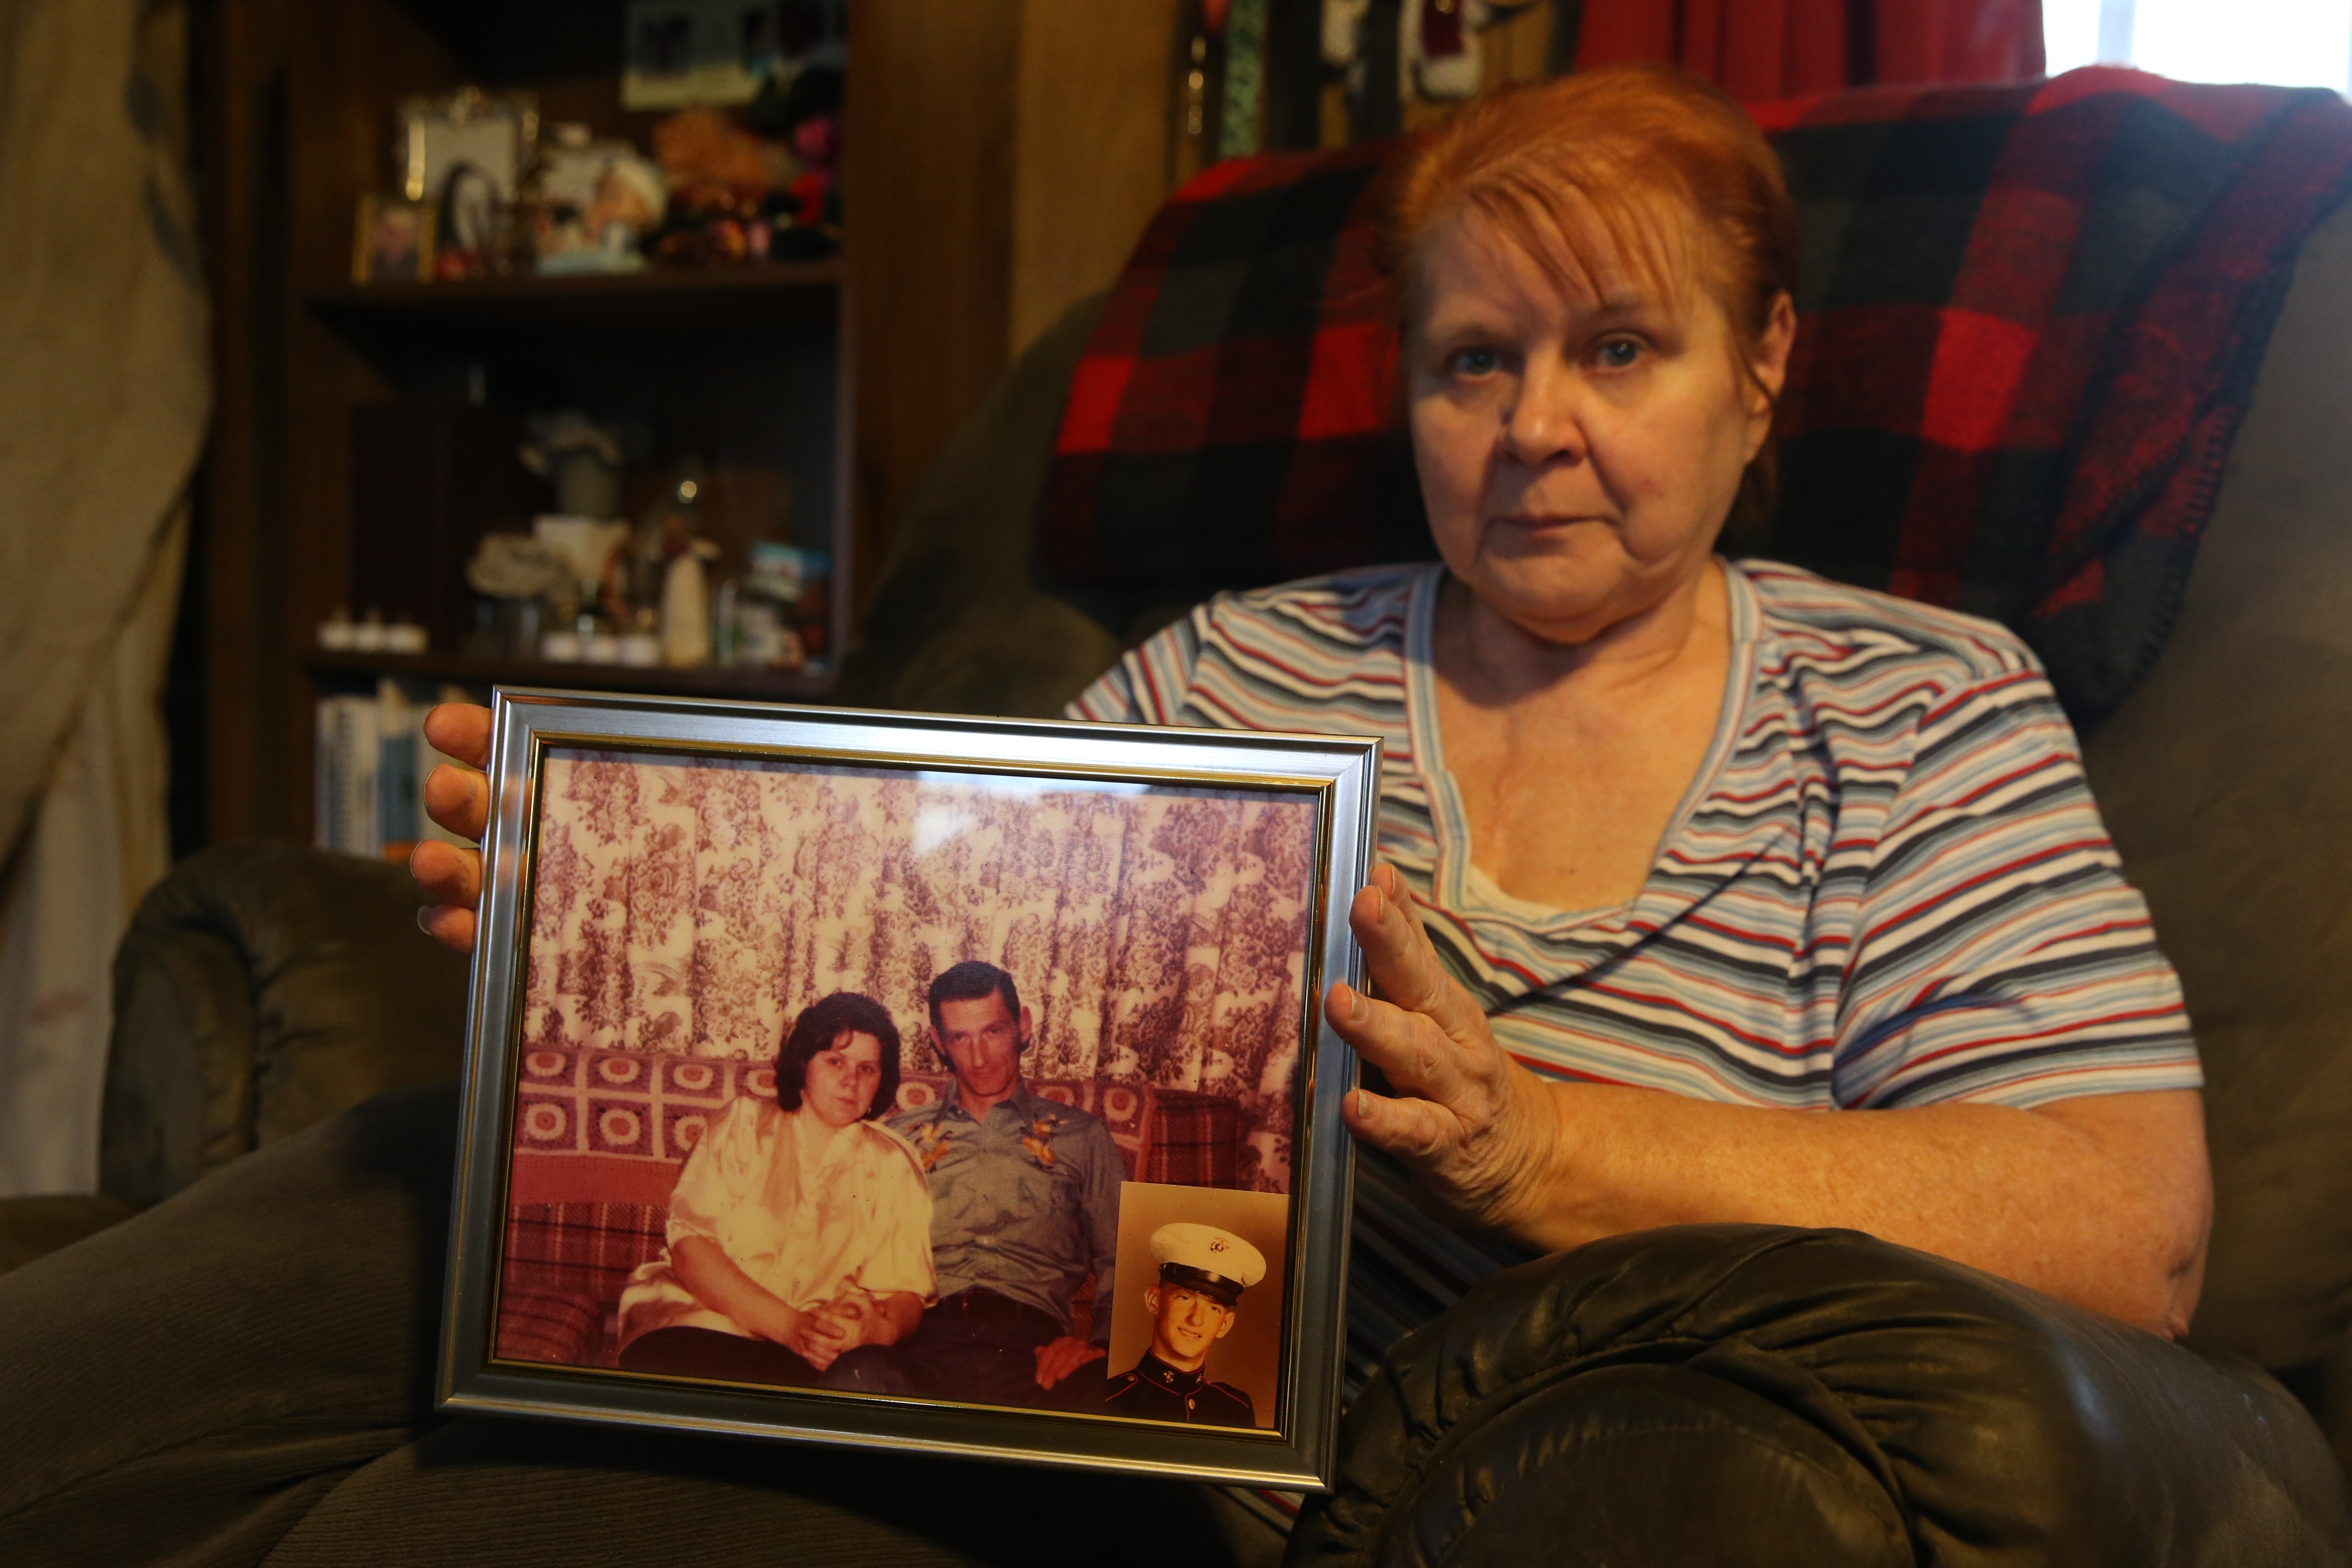 Patricia Lord contracted Legionnaires' disease in September 2016, but survived. She's seen here at her home in Middleport, N.Y. on Thursday Oct. 27, 2016, with of photo of her and her ex-husband, Richard A. Jepson of Lockport, who died from  Legionnaires' disease July 22.  (John Hickey/Buffalo News)